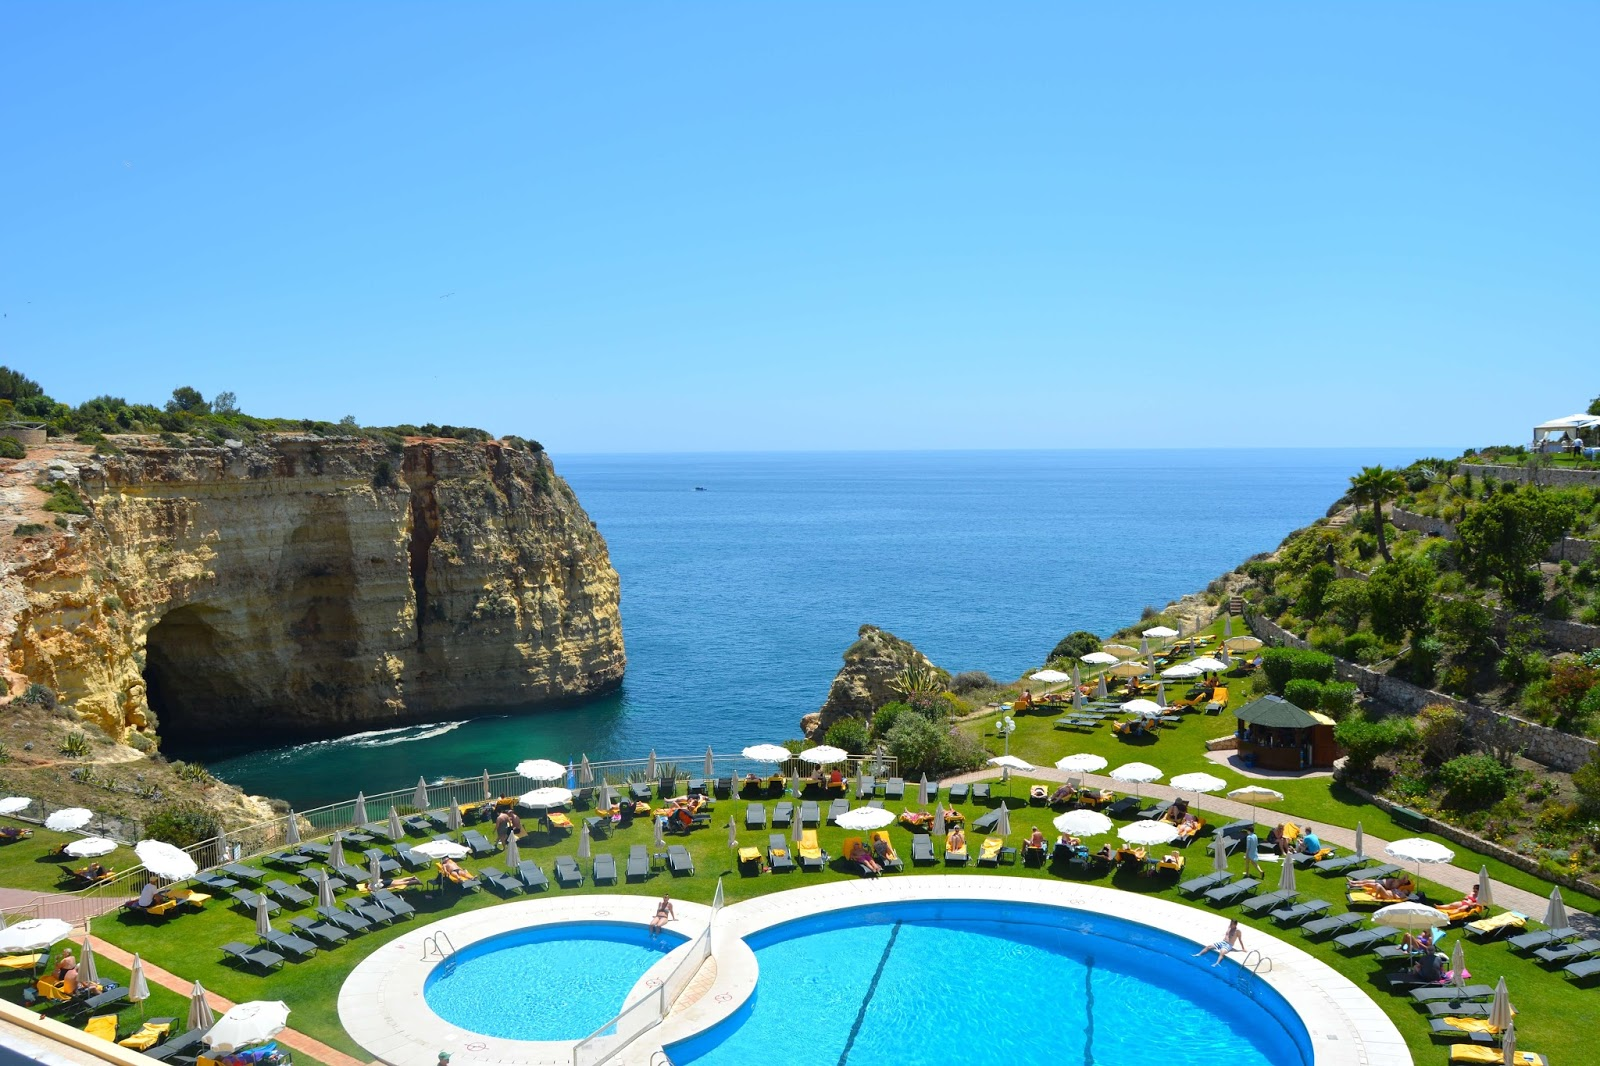 Tivoli Hotel In Algarve A 3 Day Algarve Itinerary As An Indian Female And Solo Traveller